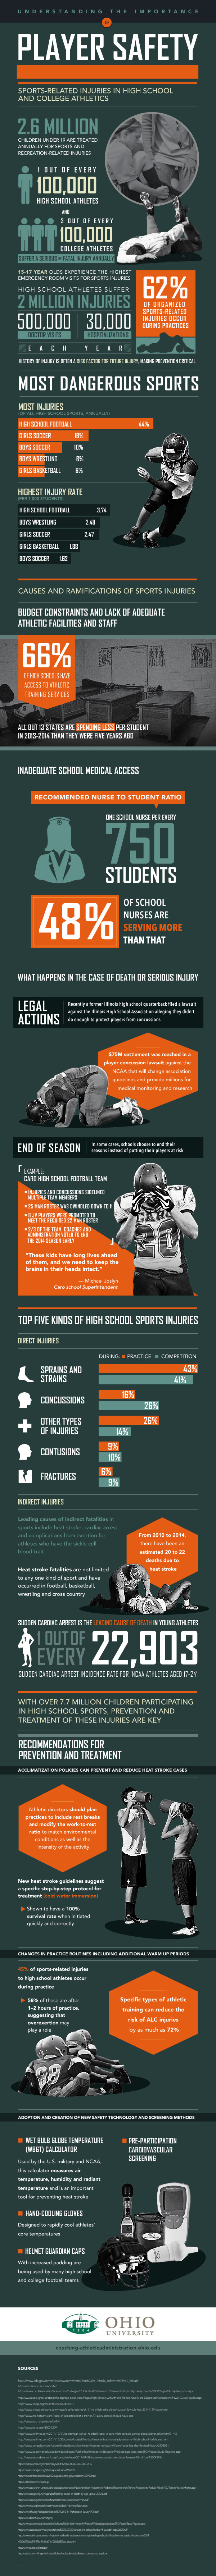 Player Safety infographic